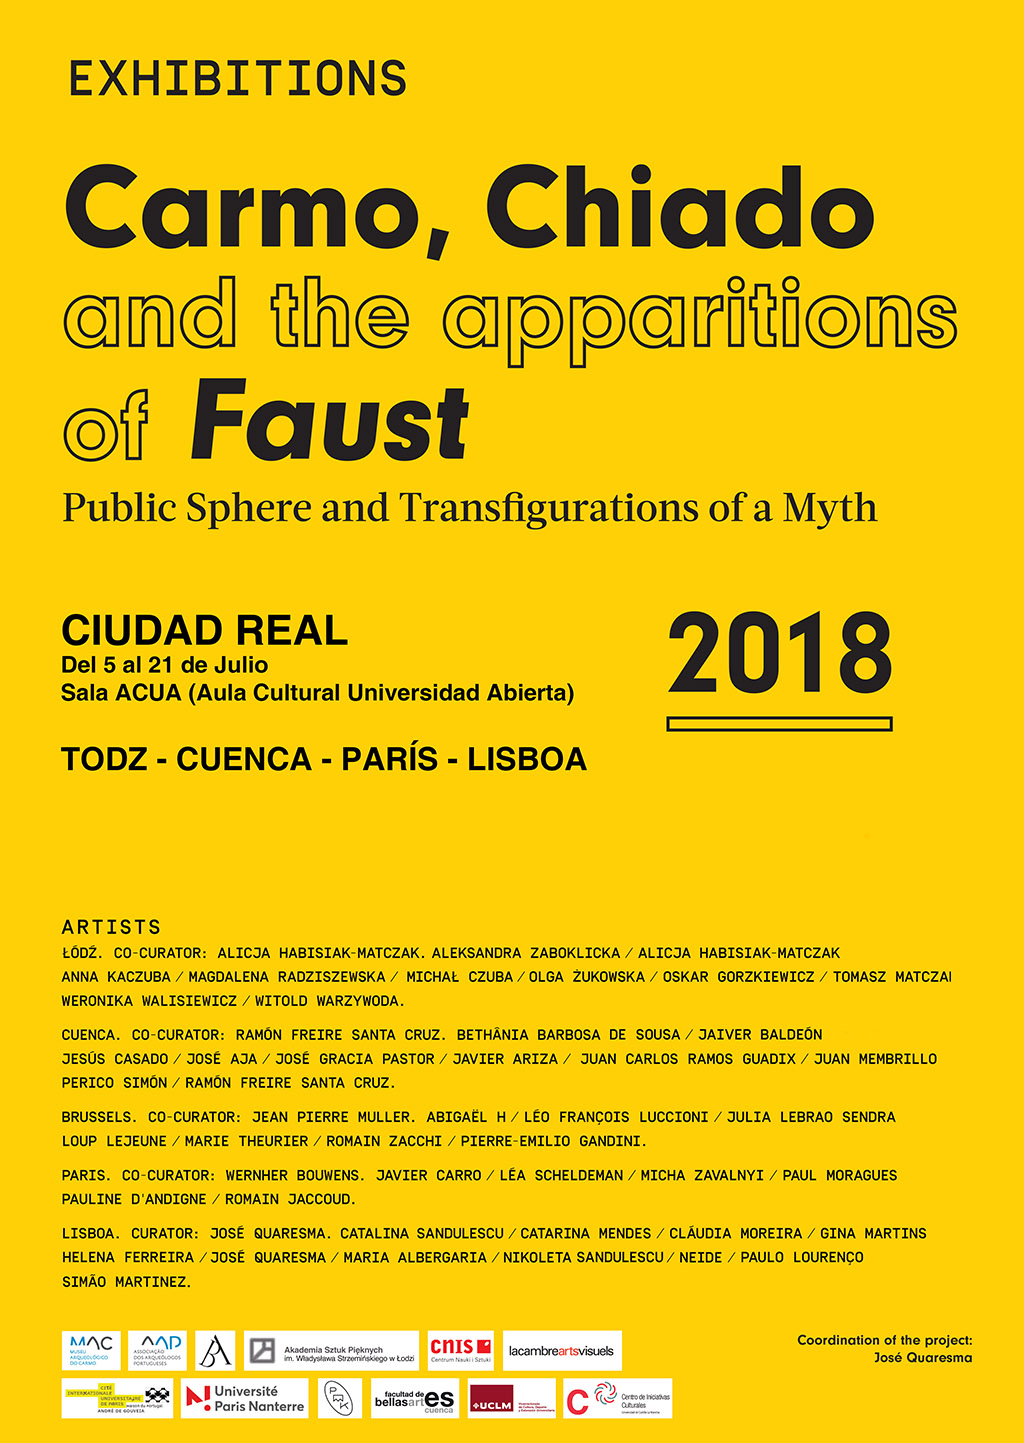 Carmon, Chiado and the apparitions of Faust